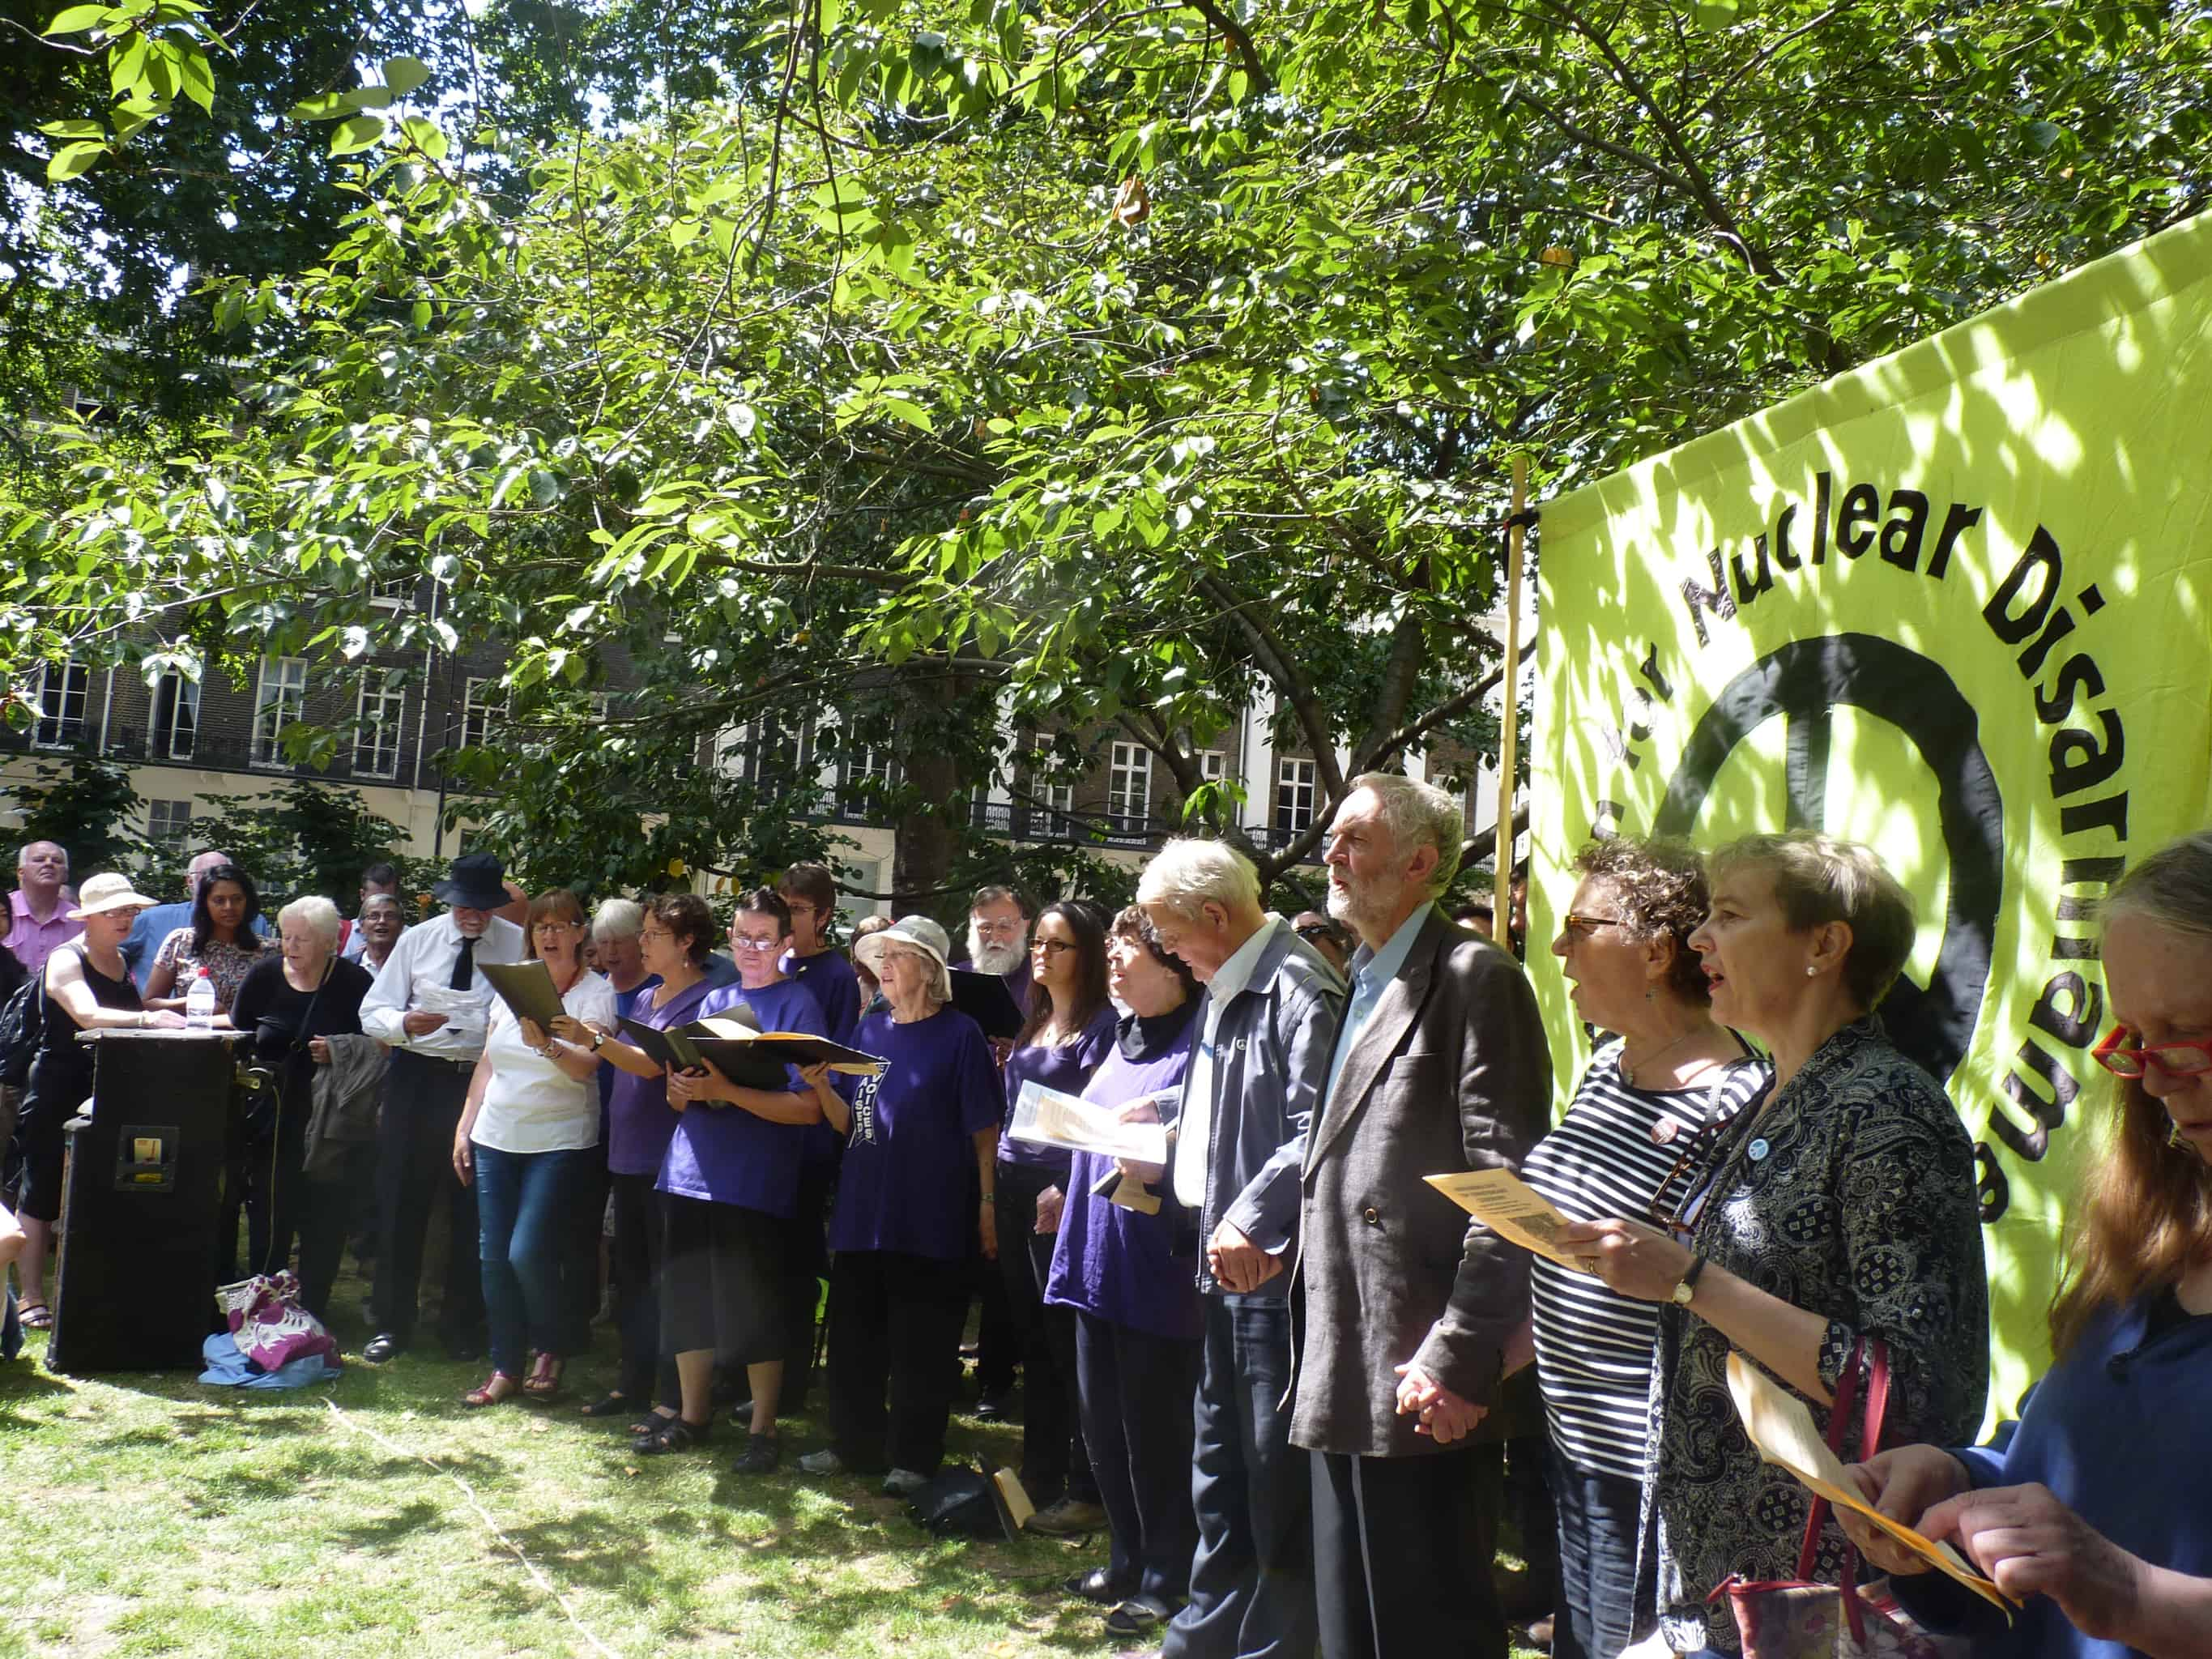 CND commemorates Hiroshima Day - Campaign for Nuclear Disarmament